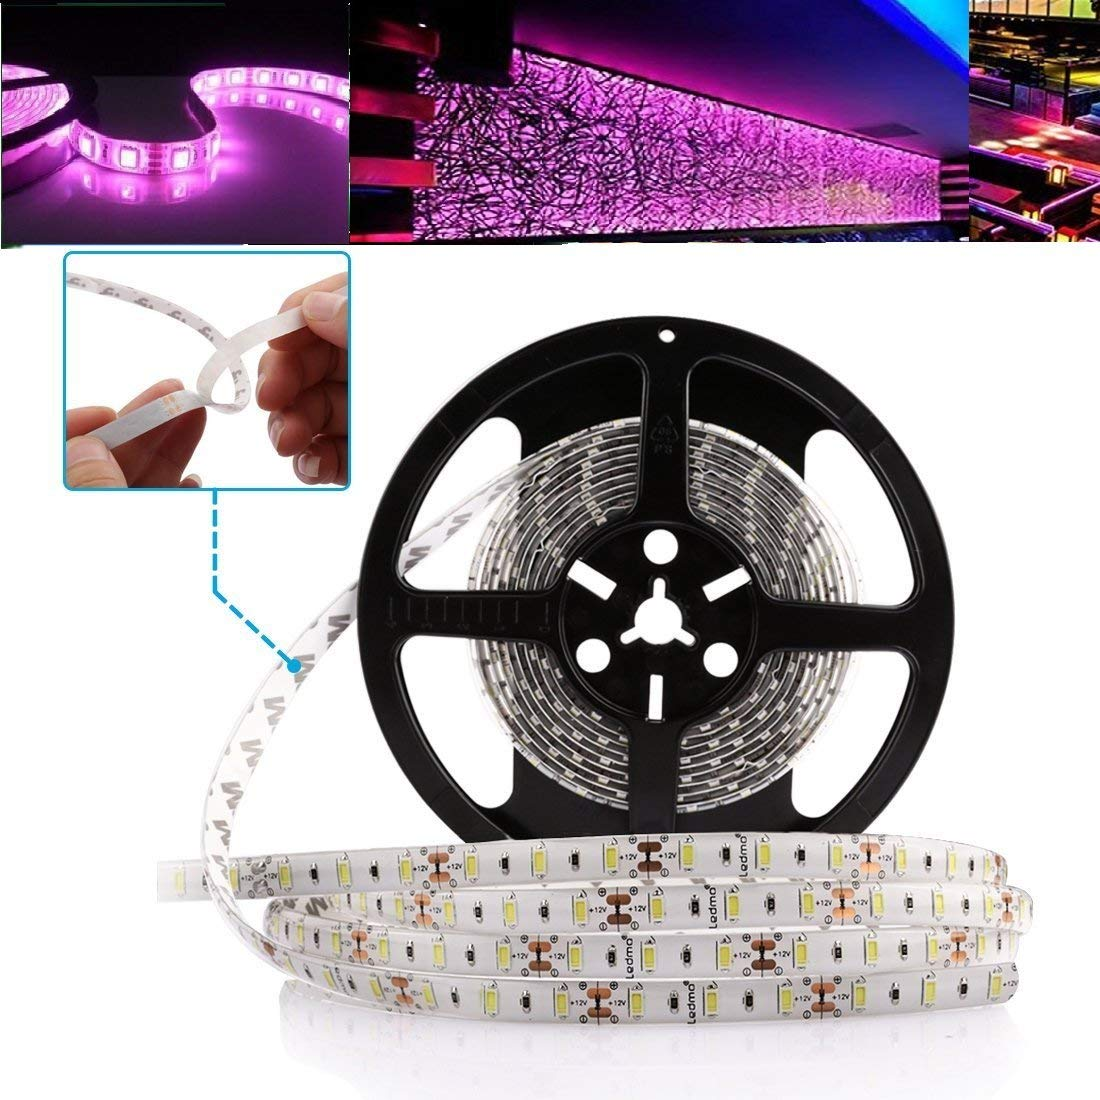 Flexible LED Light Strip, Multi-colors Christmas New year Party Decoration Rope Lights,150 Units 5050 LEDs, Non-Waterproof LED Tape, Pack of 16.4ft/5m (Purple)